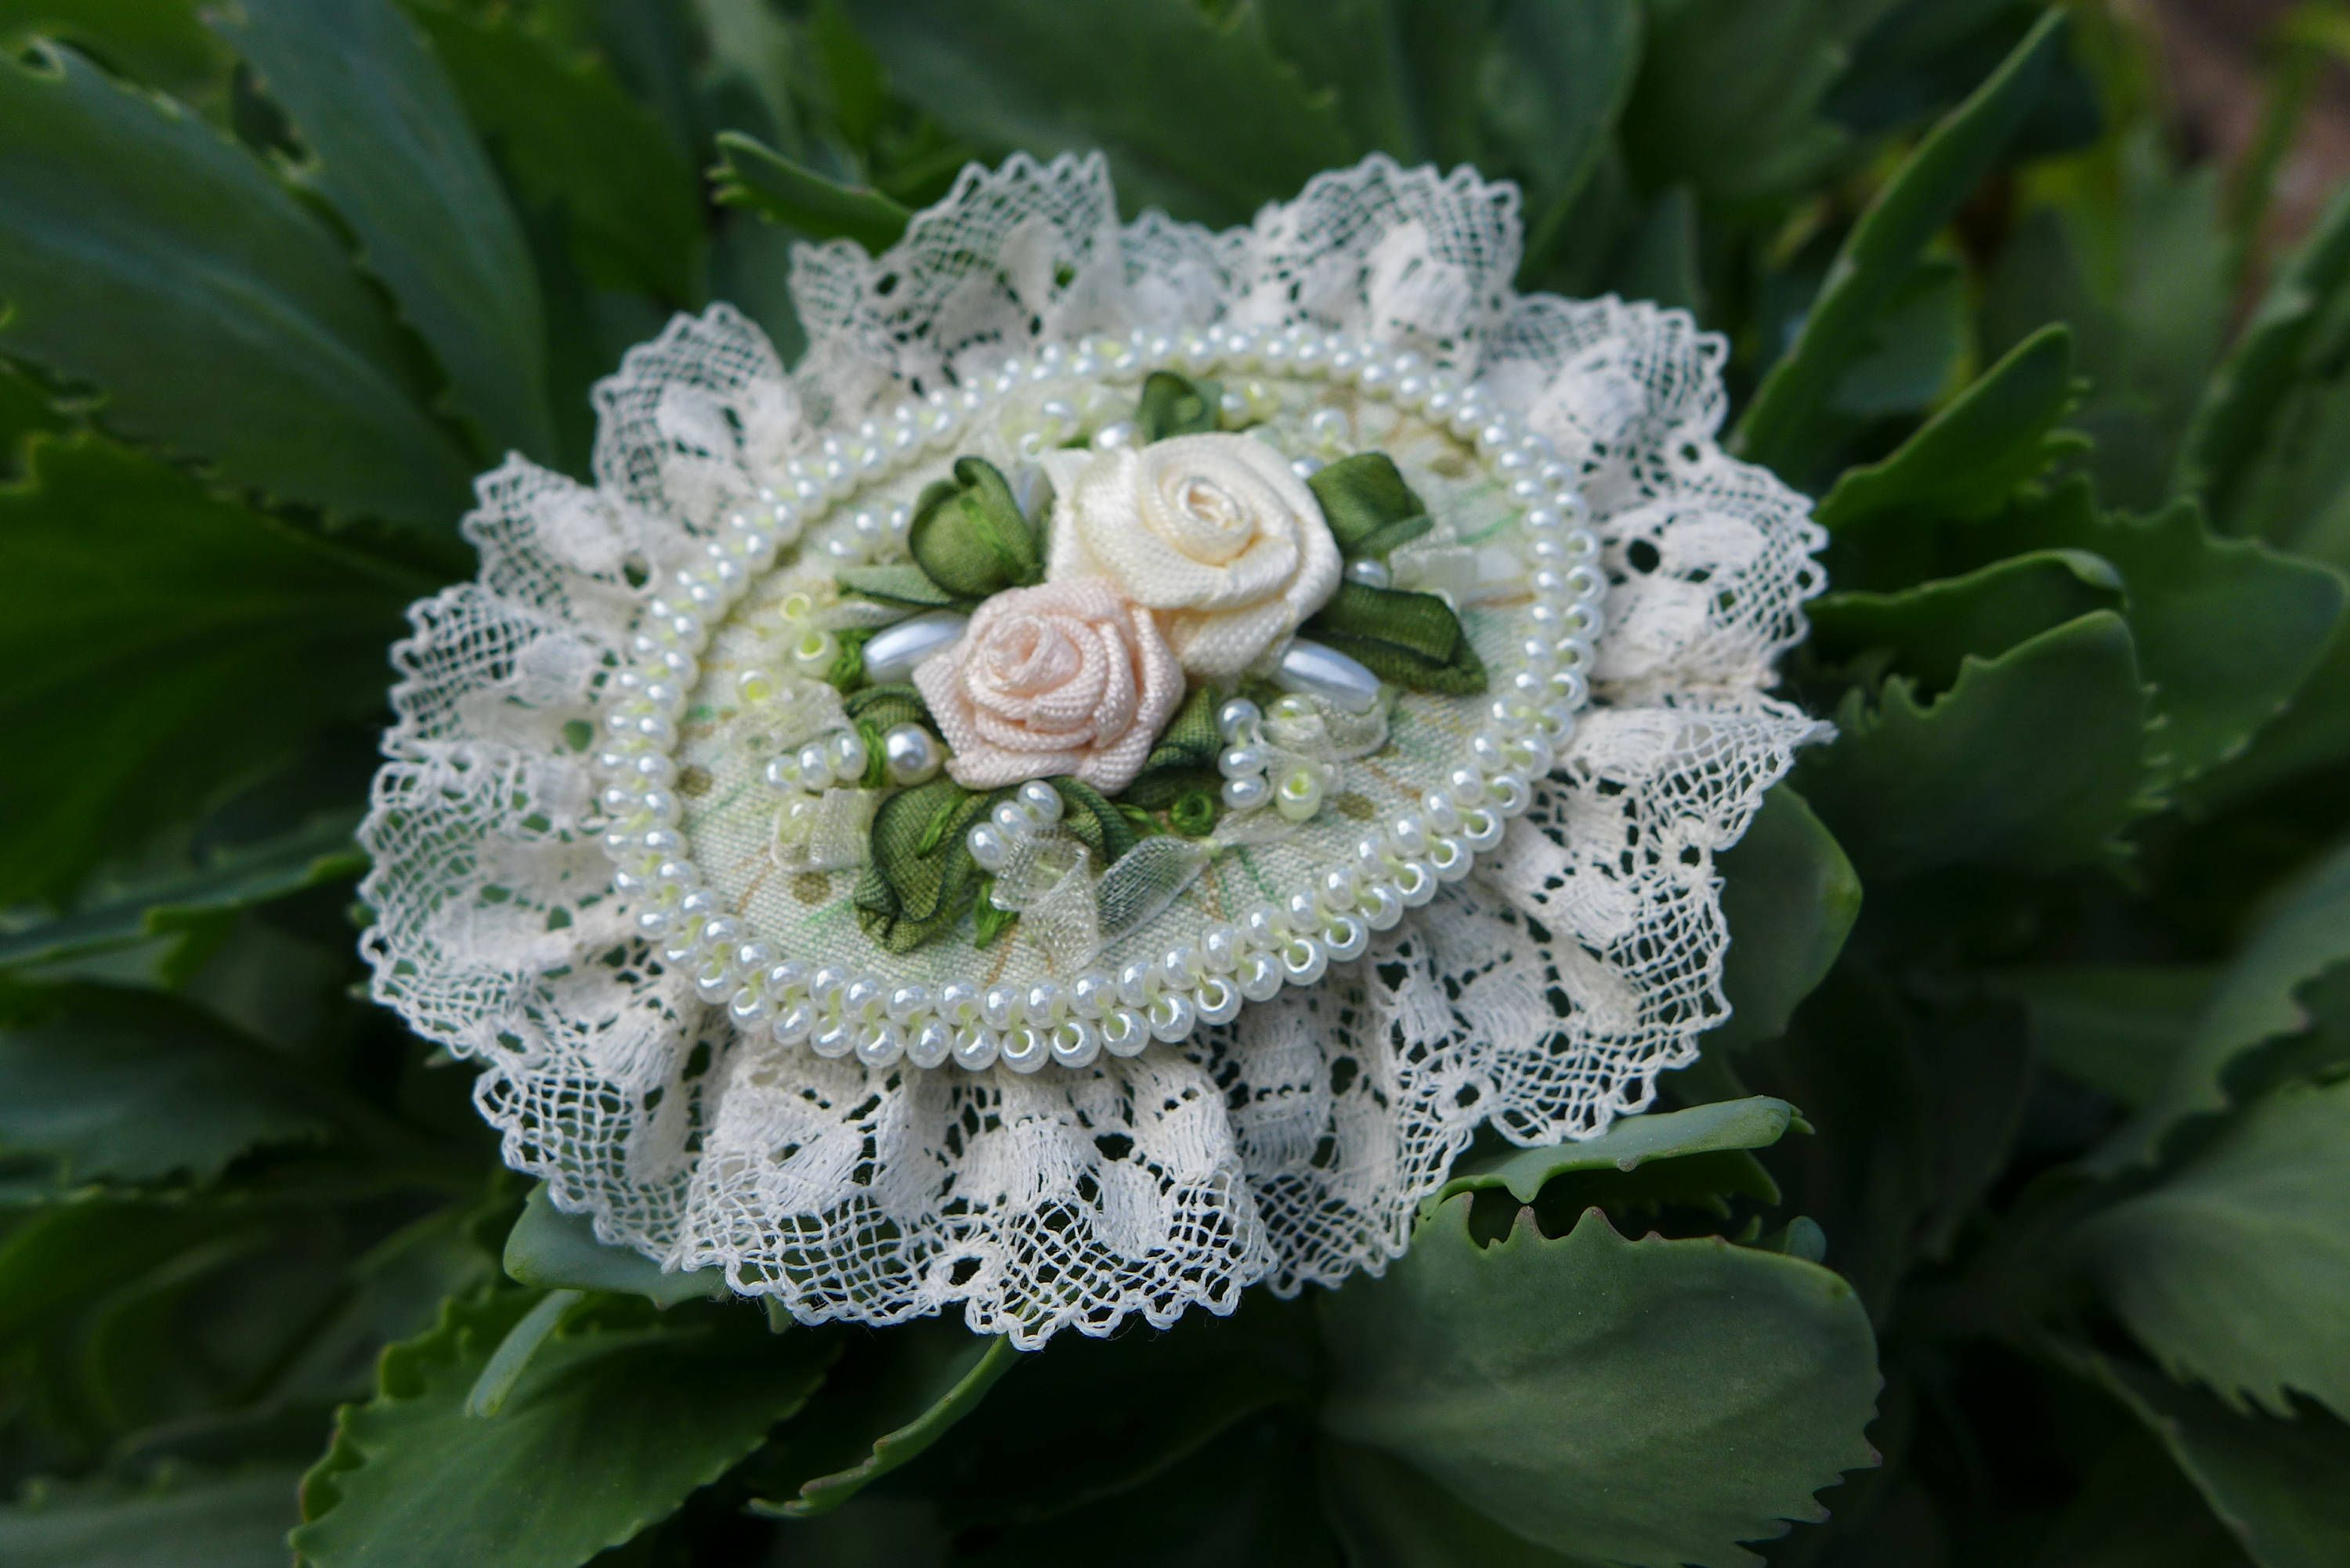 White-green vintage inspired victorian style romantic cameo brooch one of a kind handmade textile jewelry with ribbon embroidery and roses by Virvi on Etsy